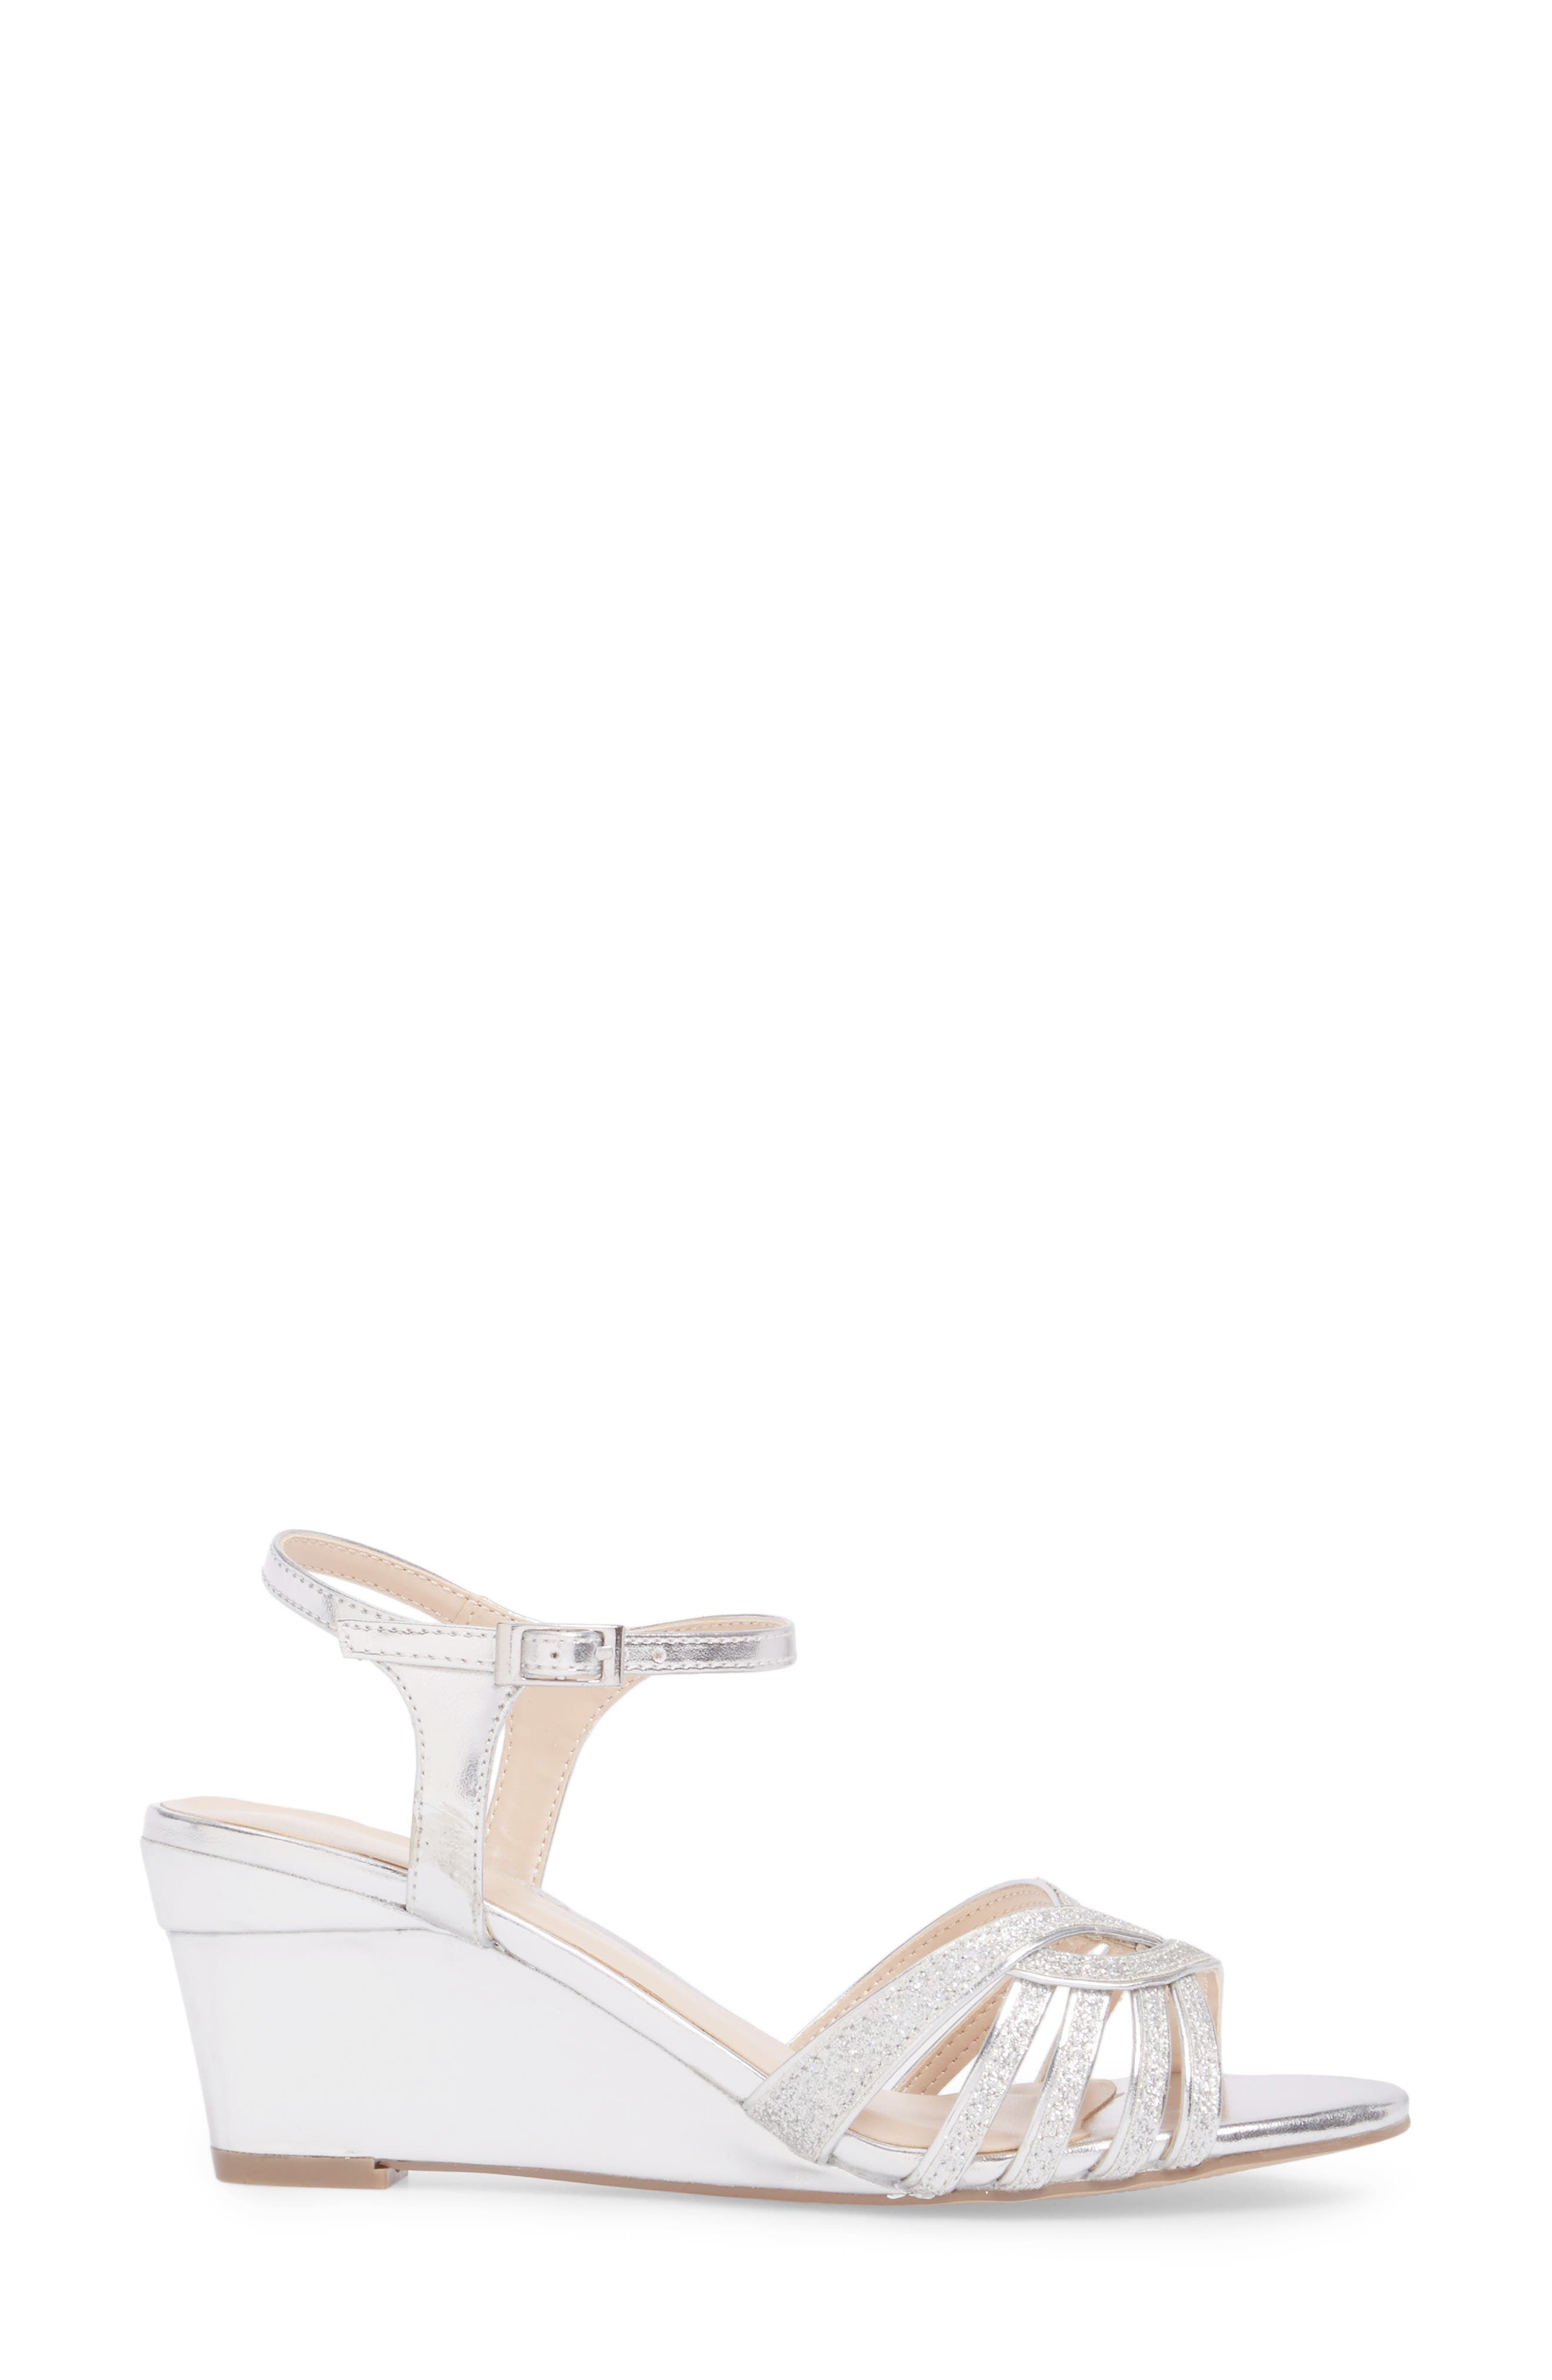 Karianne Wedge Sandal,                             Alternate thumbnail 3, color,                             Silver